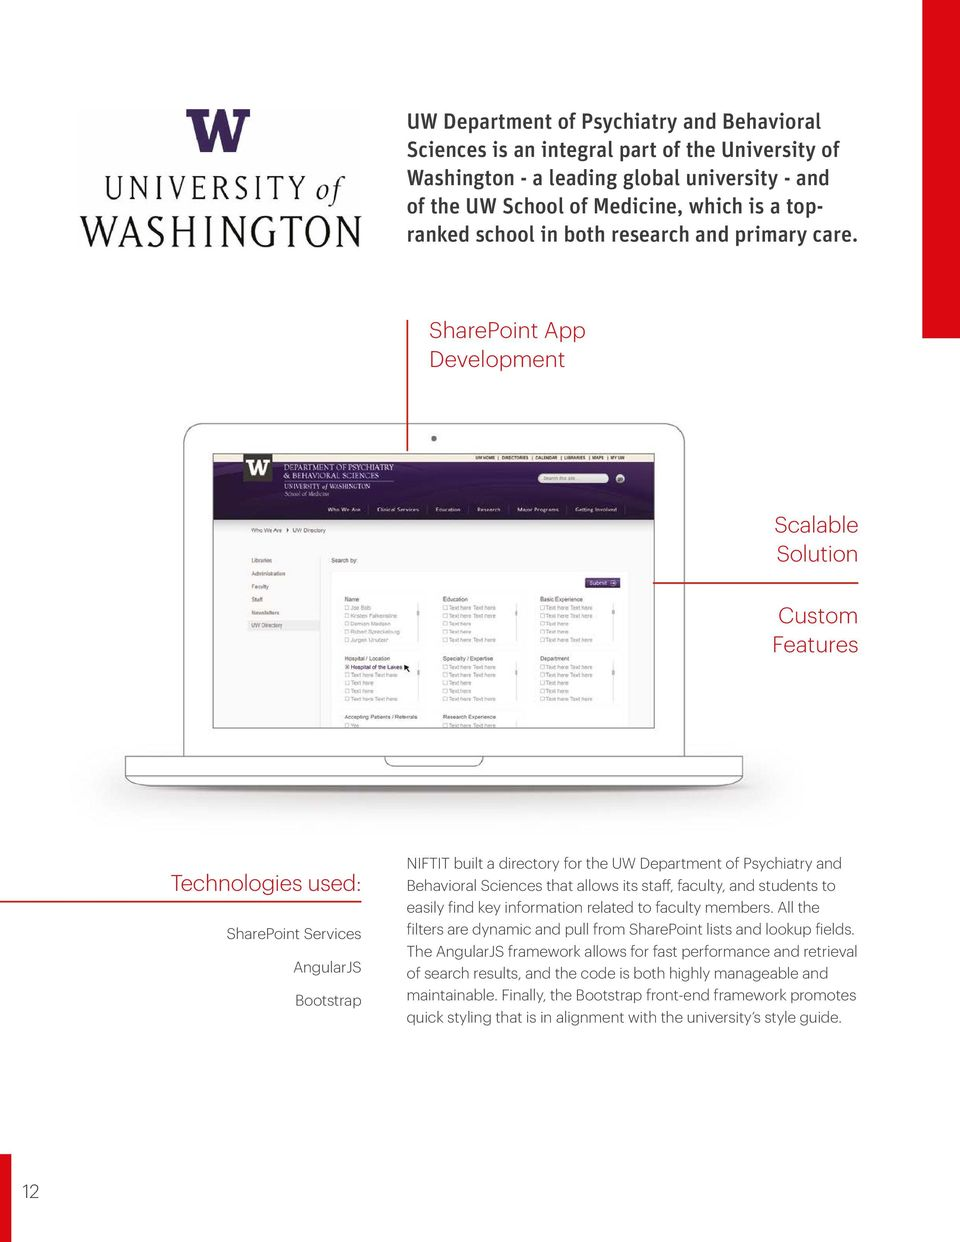 SharePoint App Development Scalable Solution Custom Features Technologies used: SharePoint Services AngularJS Bootstrap NIFTIT built a directory for the UW Department of Psychiatry and Behavioral